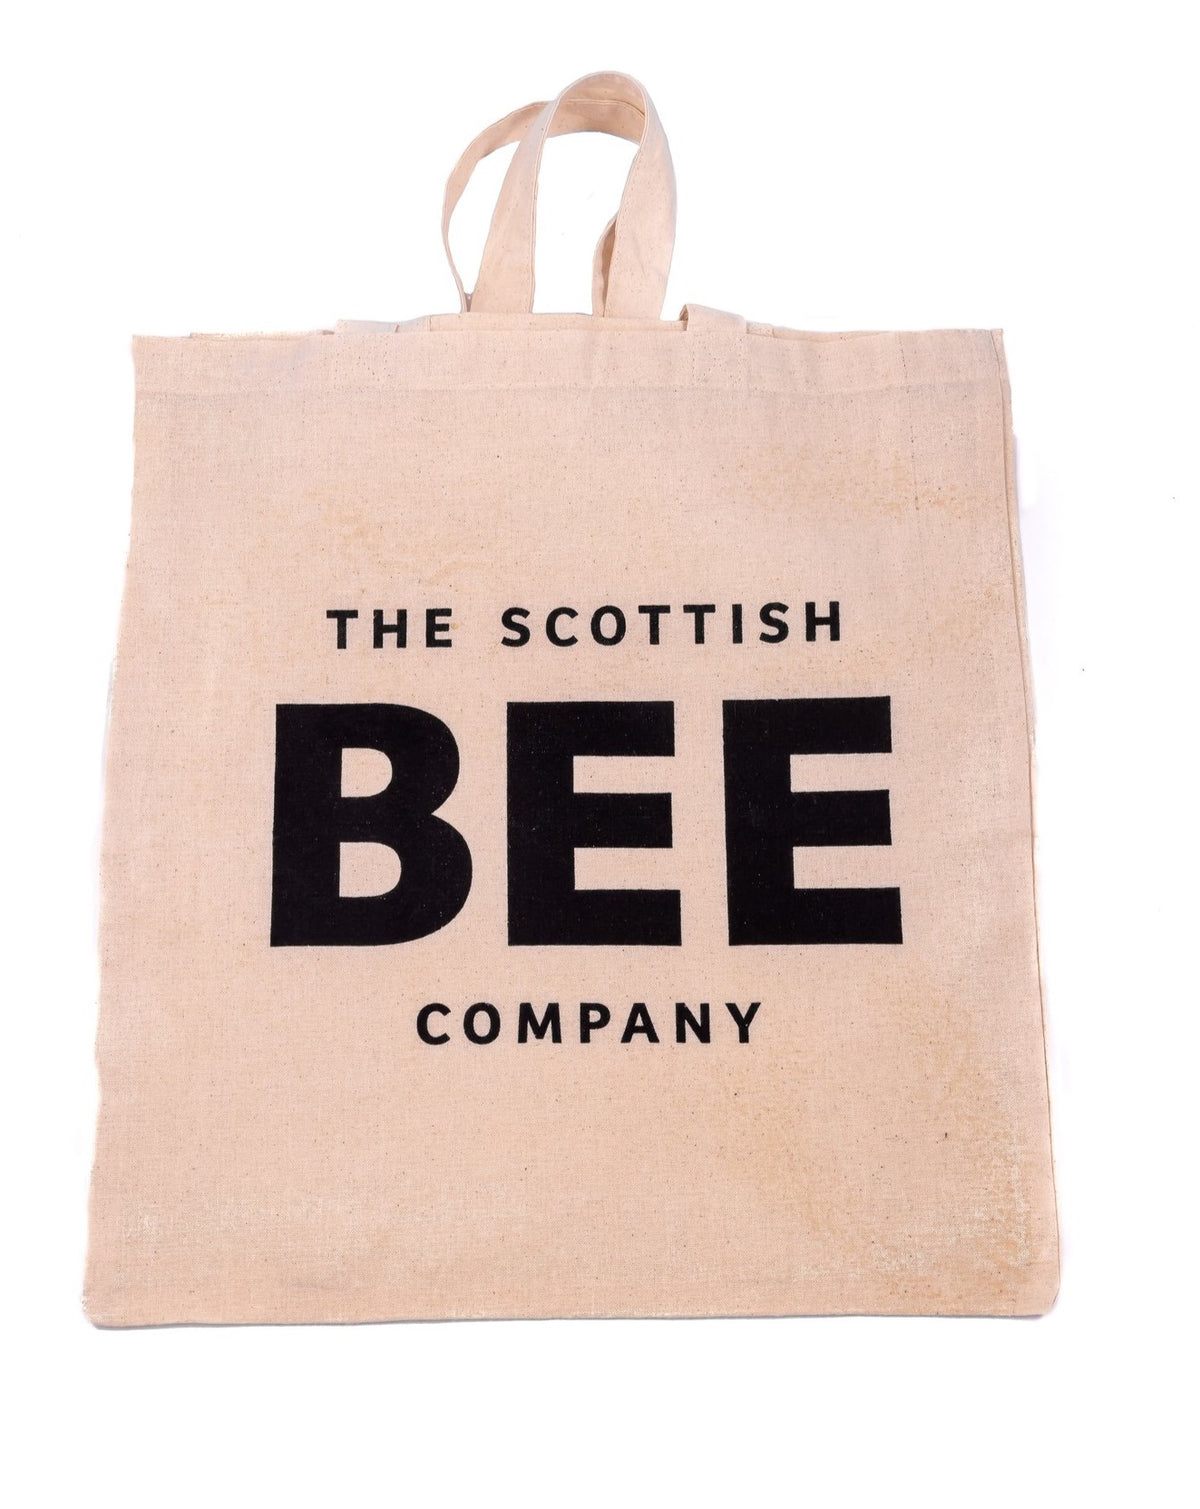 The Scottish Bee Company Tote Bag